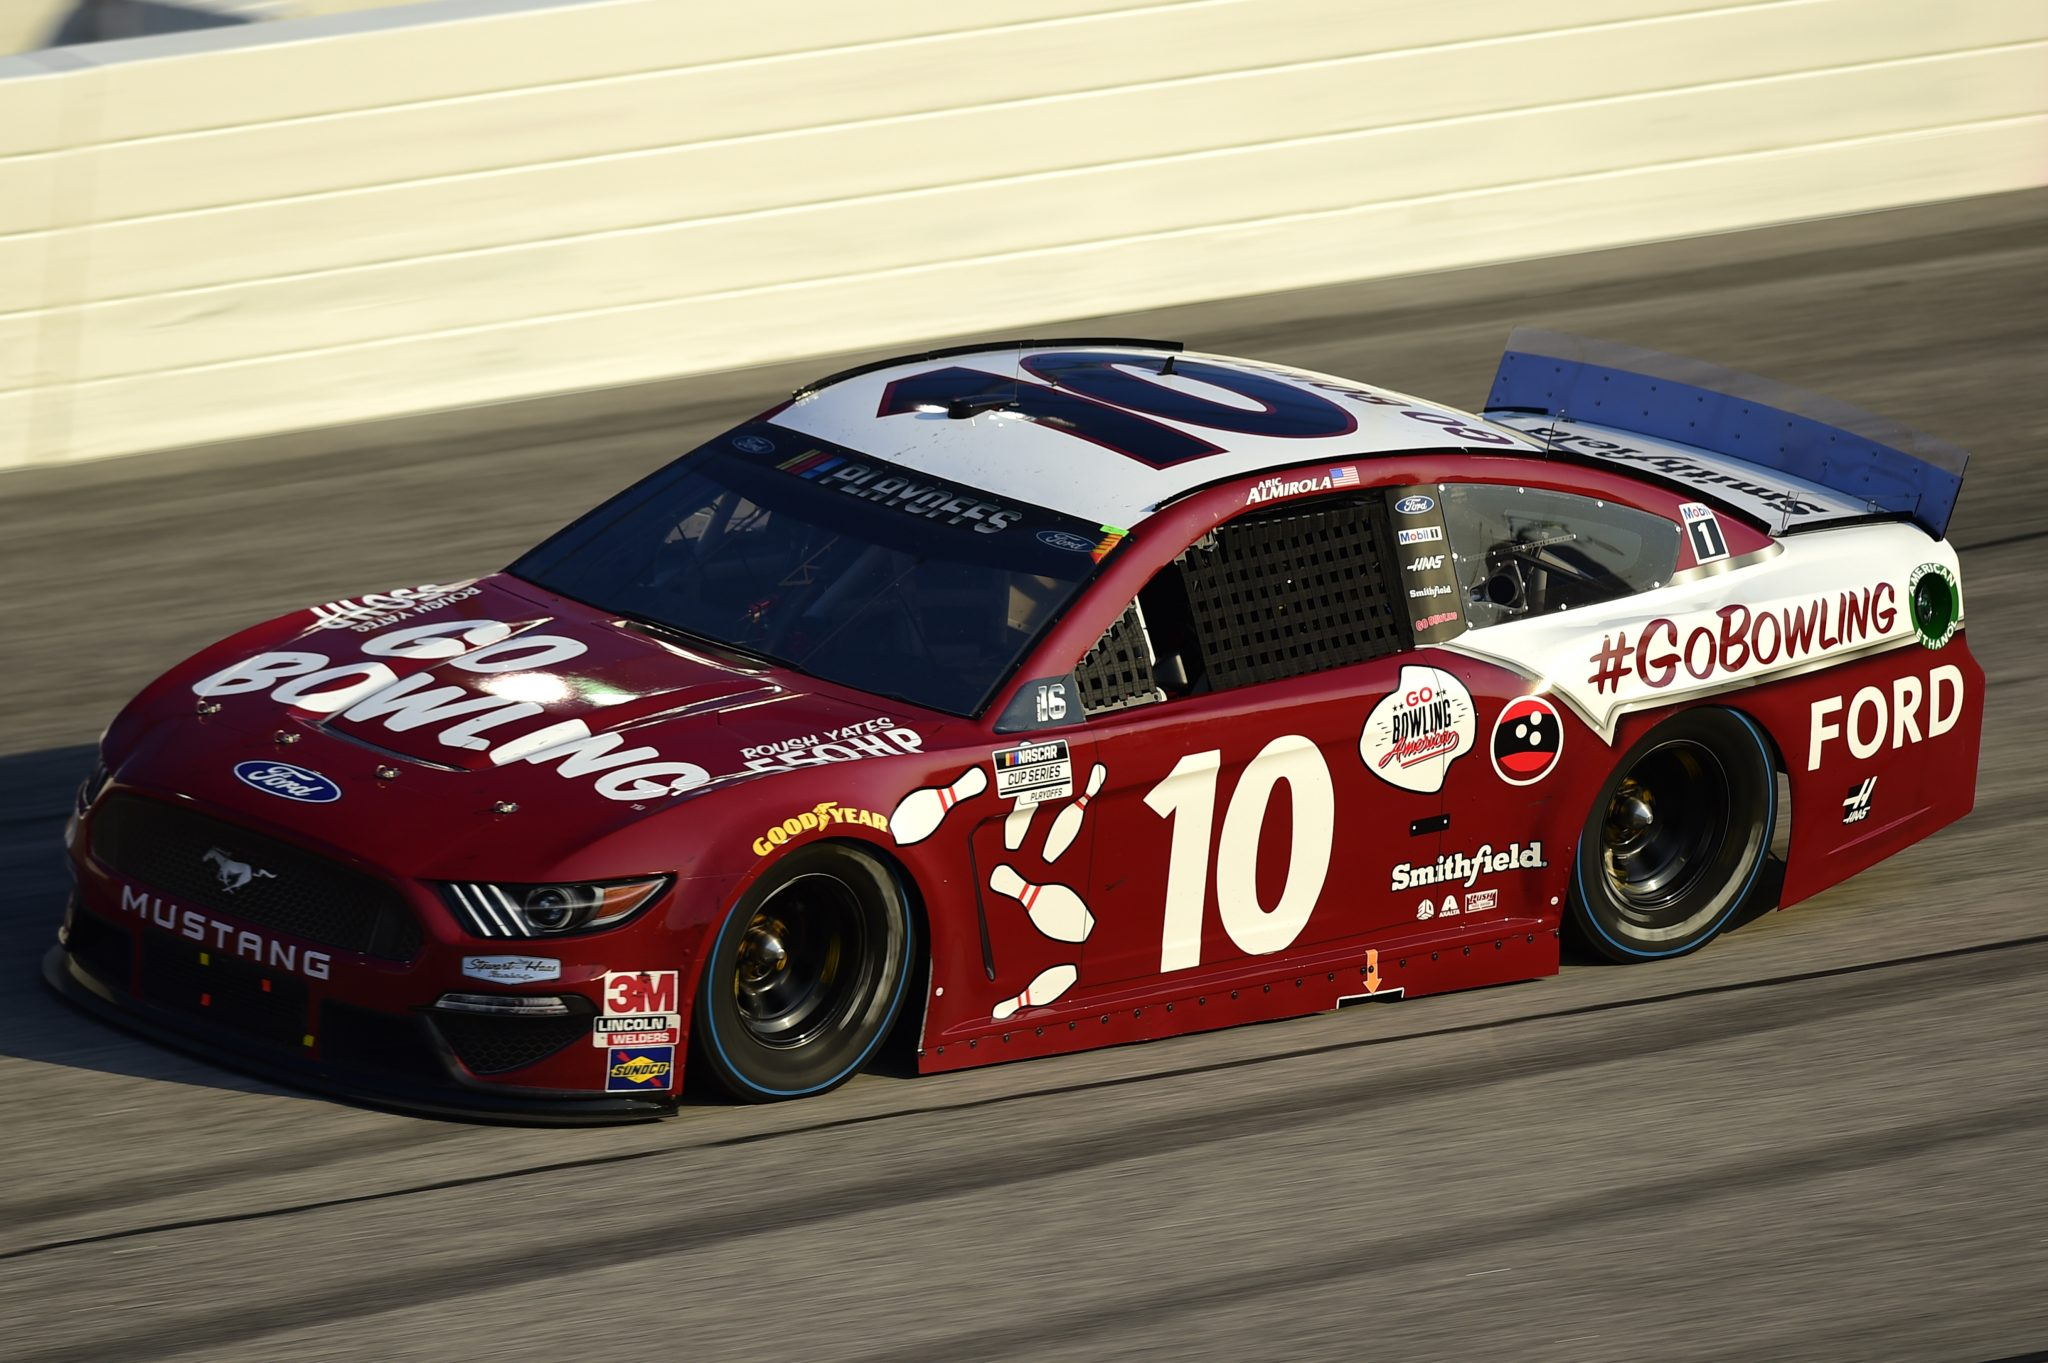 DARLINGTON, SOUTH CAROLINA - SEPTEMBER 06: Aric Almirola, driver of the #10 Go Bowling Ford, drives during the NASCAR Cup Series Cook Out Southern 500 at Darlington Raceway on September 06, 2020 in Darlington, South Carolina. (Photo by Jared C. Tilton/Getty Images) | Getty Images